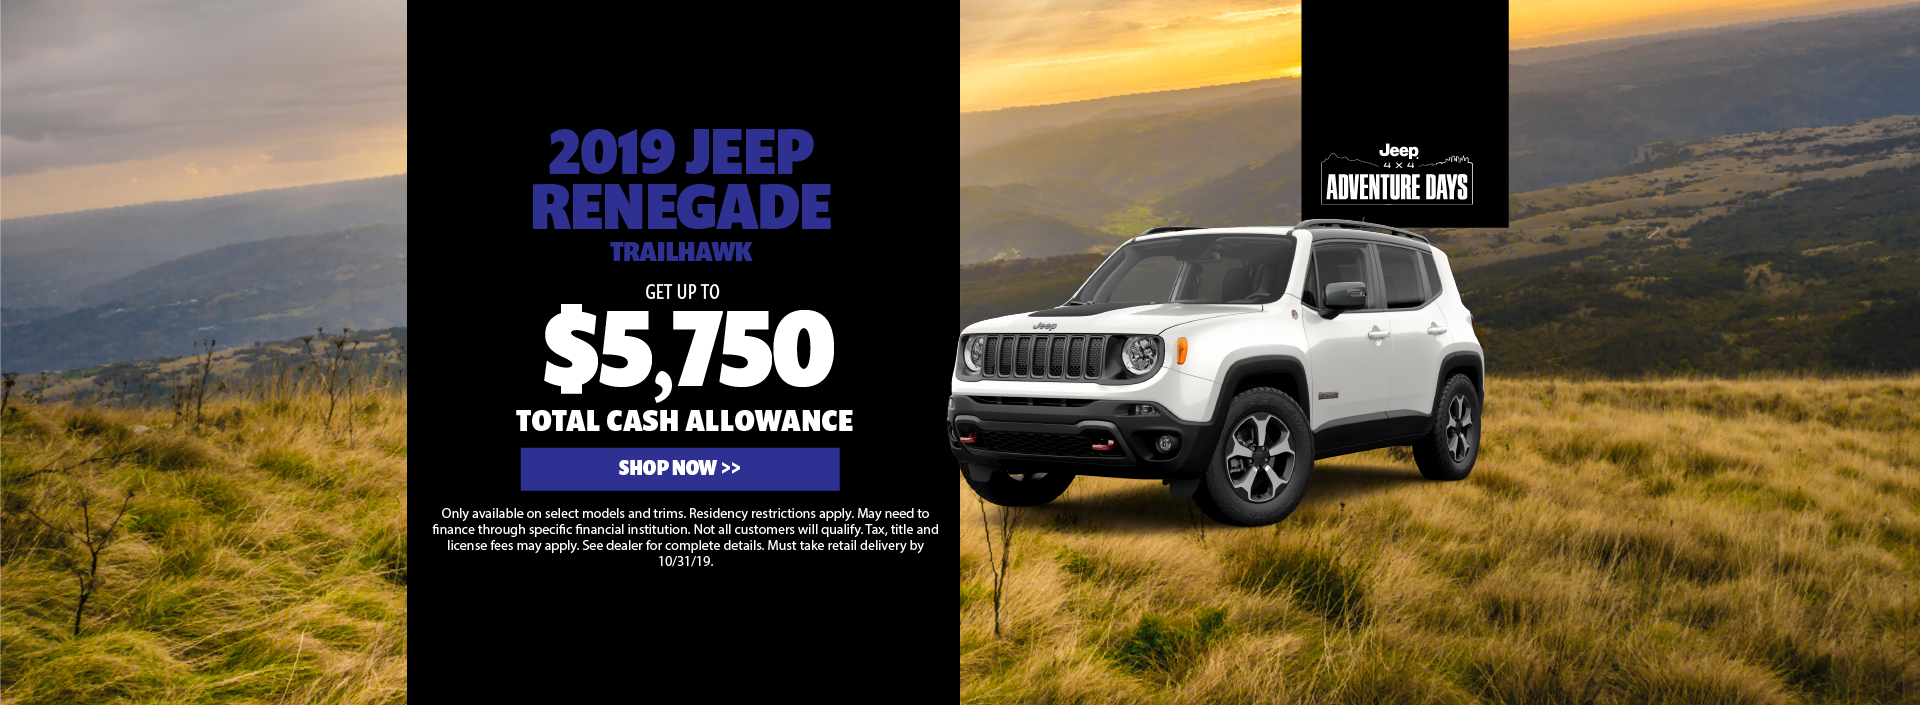 2019 Jeep Renegade Cash Offer